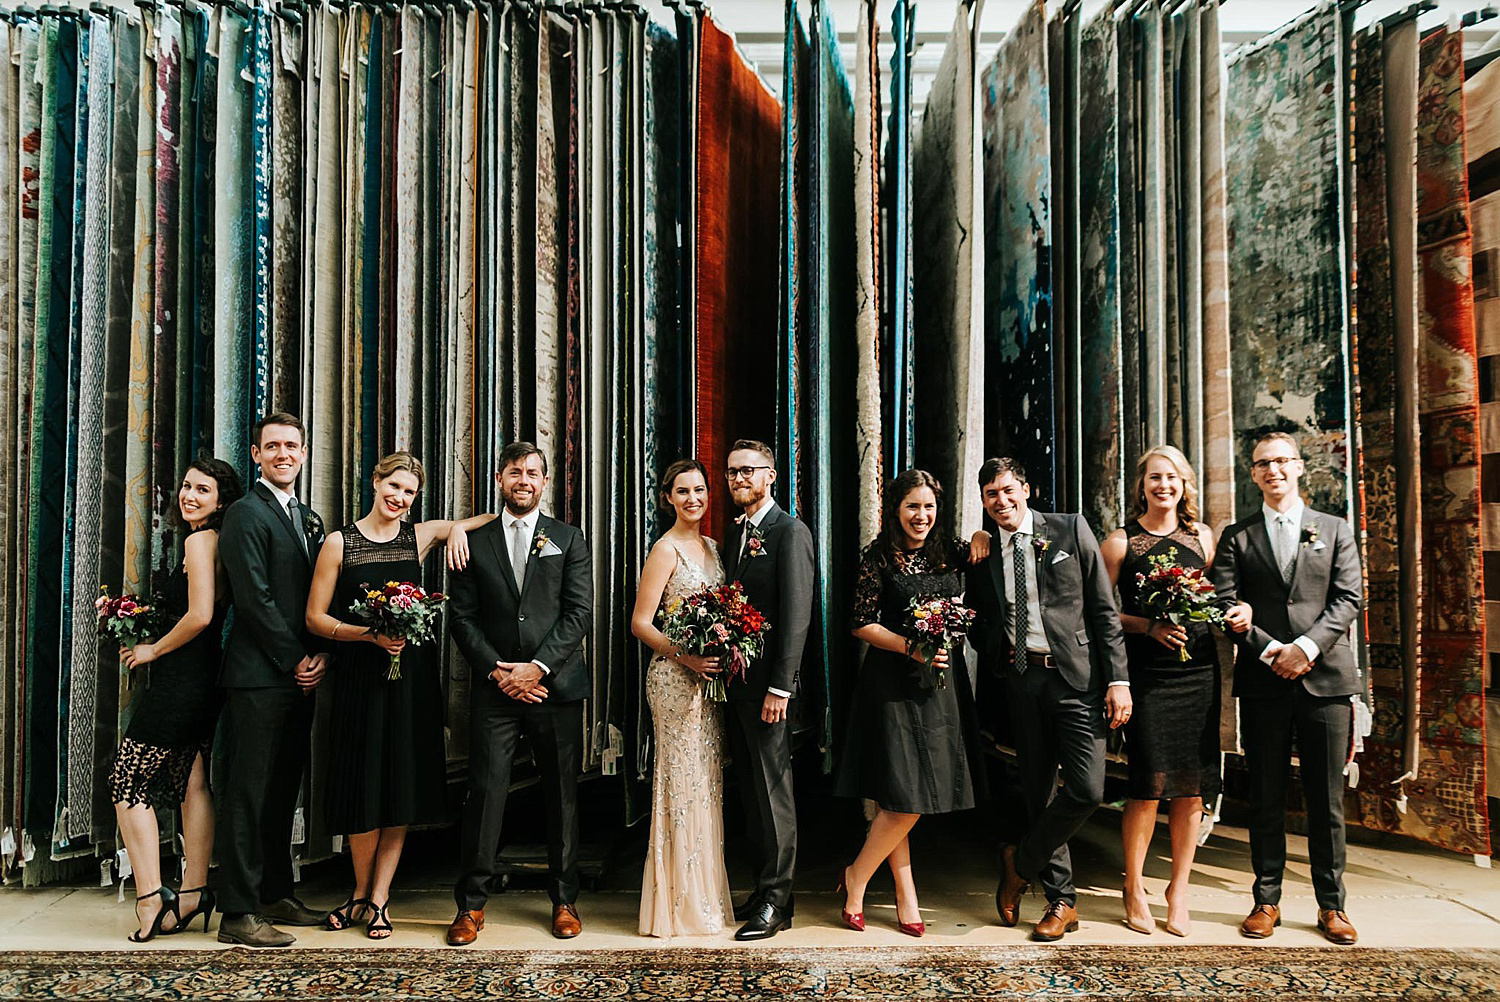 Bridal party at material culture